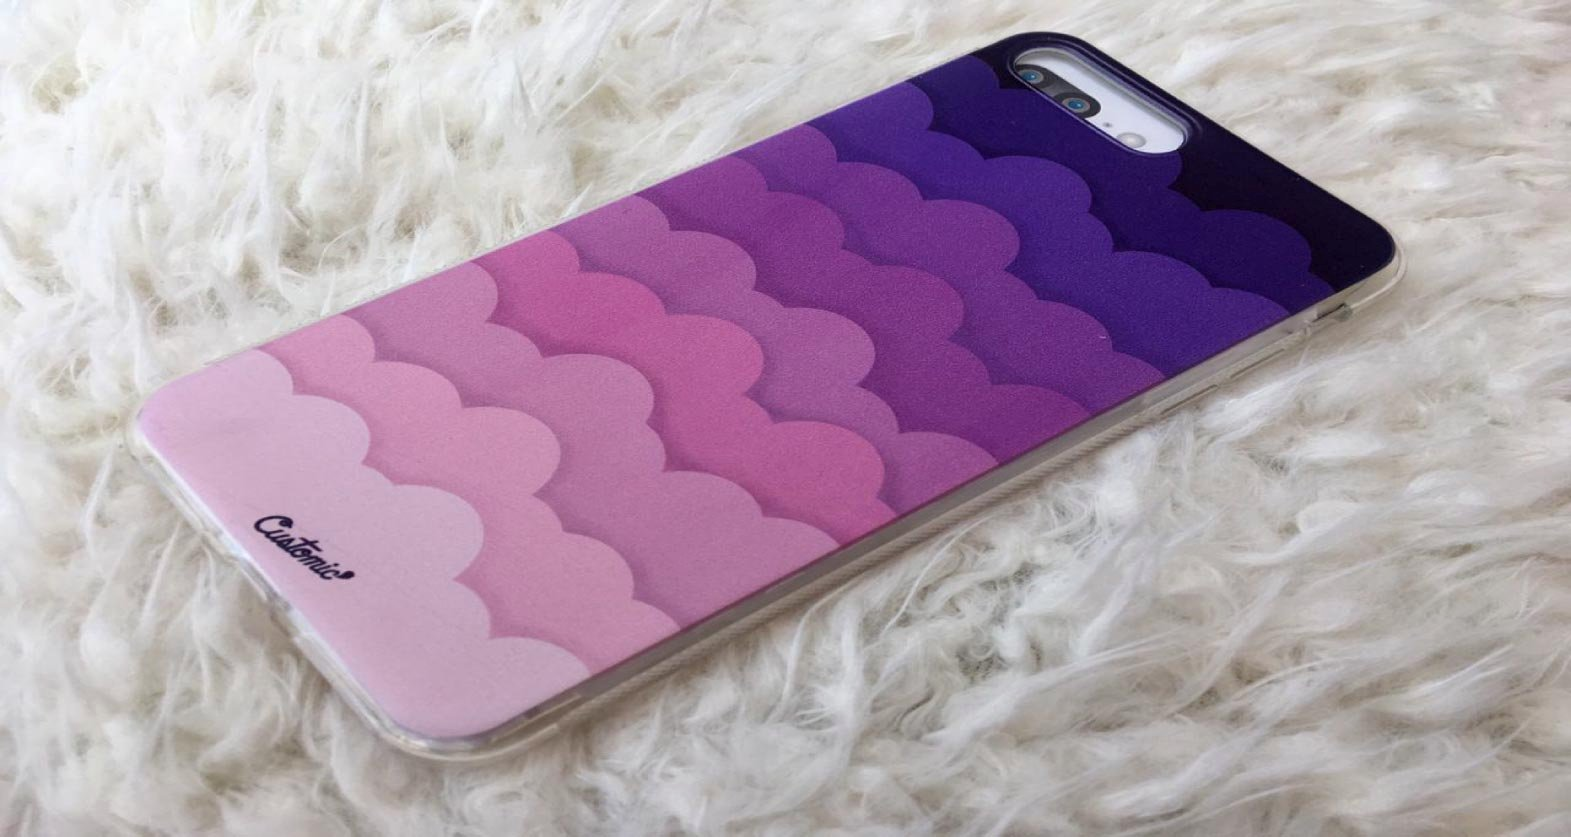 Capinha para iPhone 7 Plus - Feminina - Pink Clouds